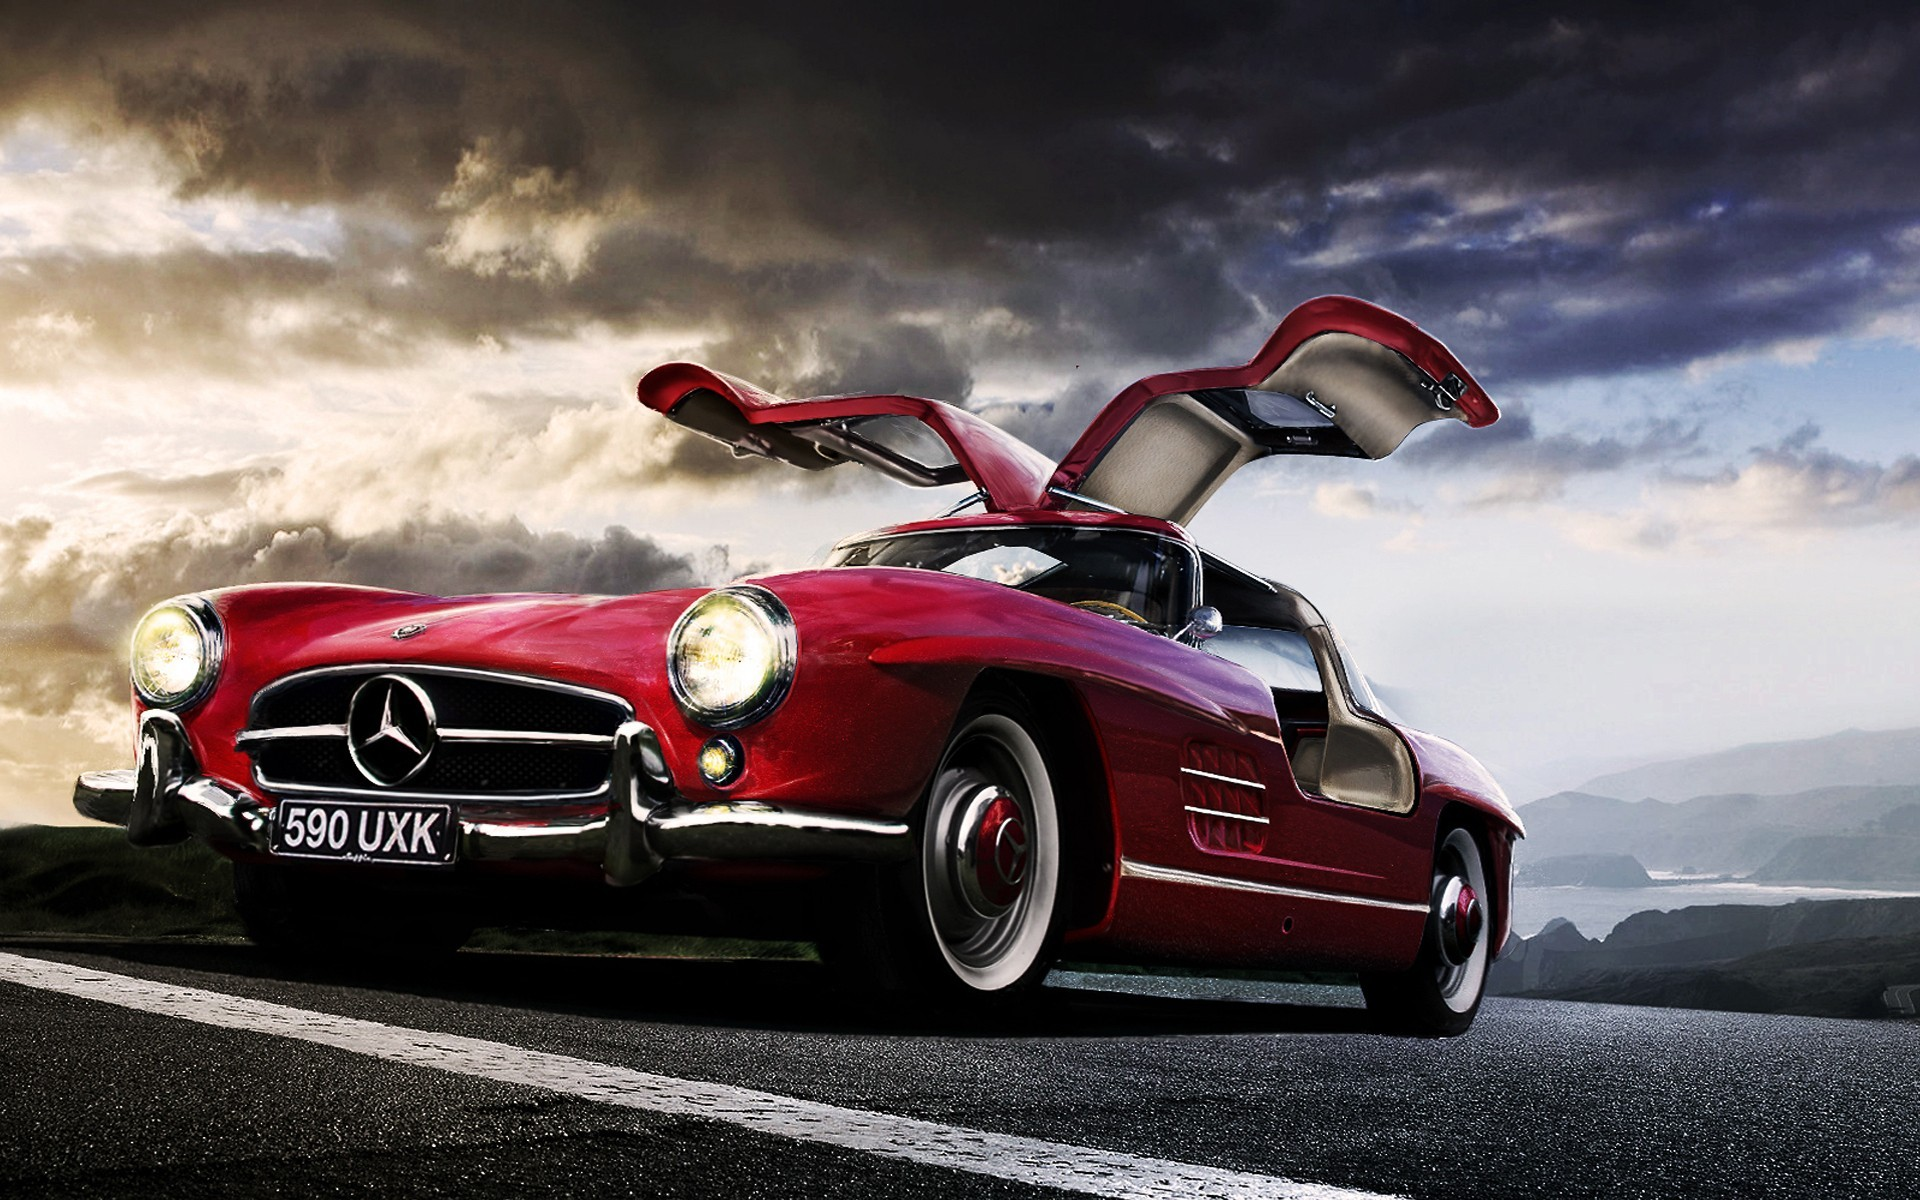 Cars tires mercedes benz wallpaper 8423 for Tires for mercedes benz